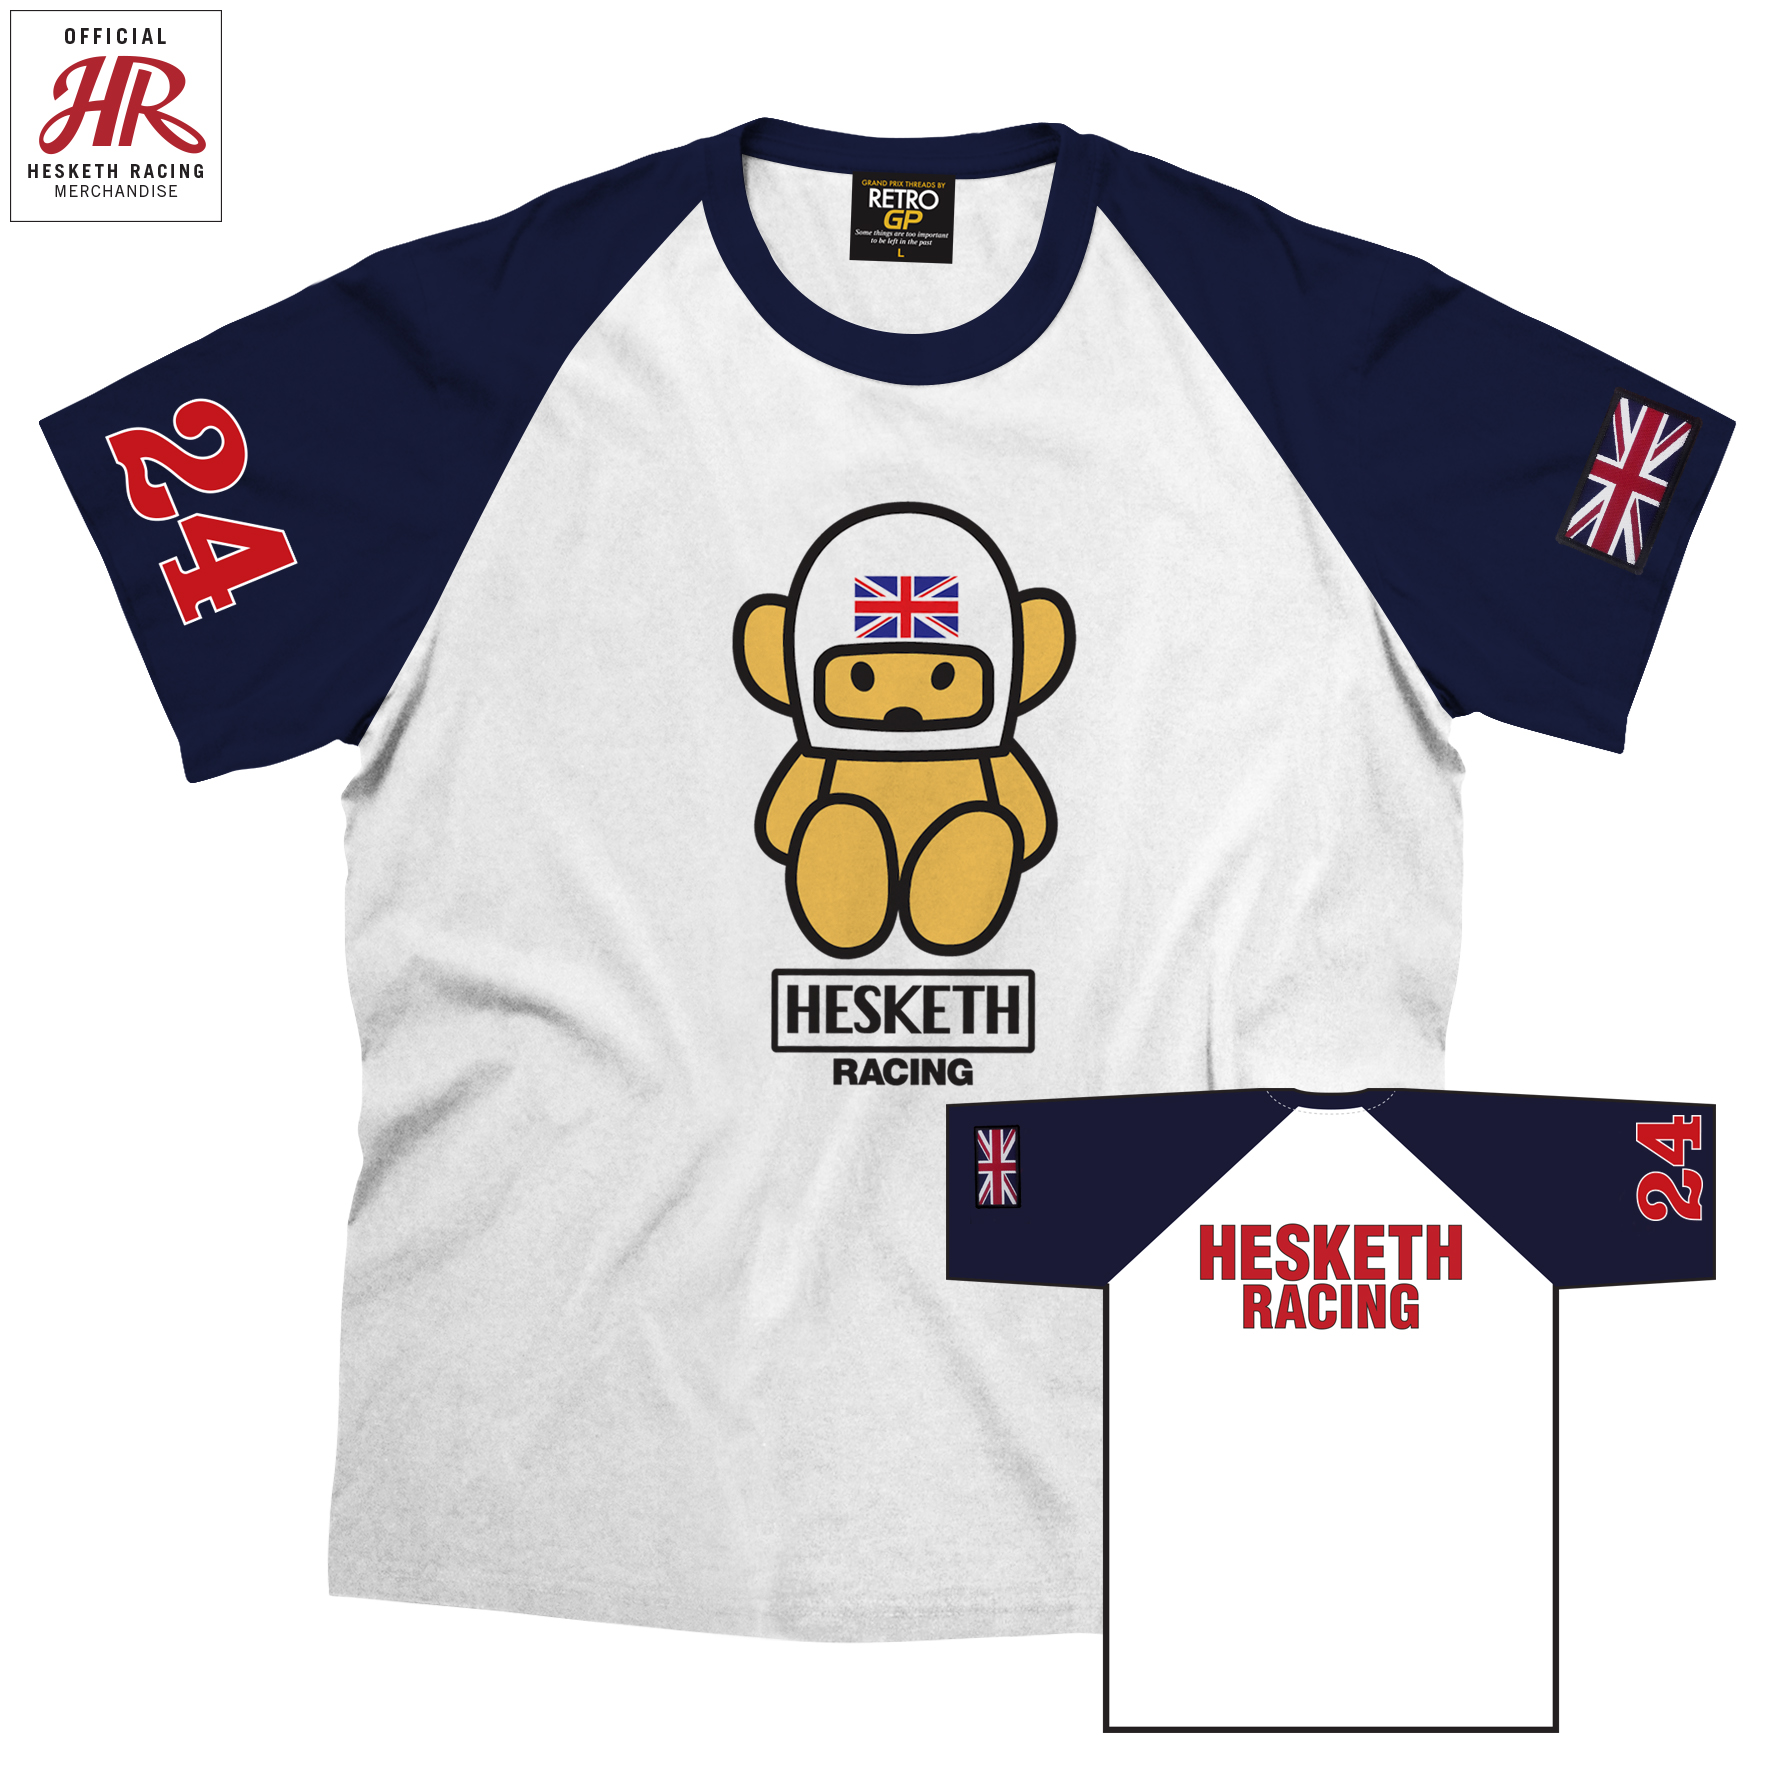 Product image for Official Hesketh Racing Crew Shirt